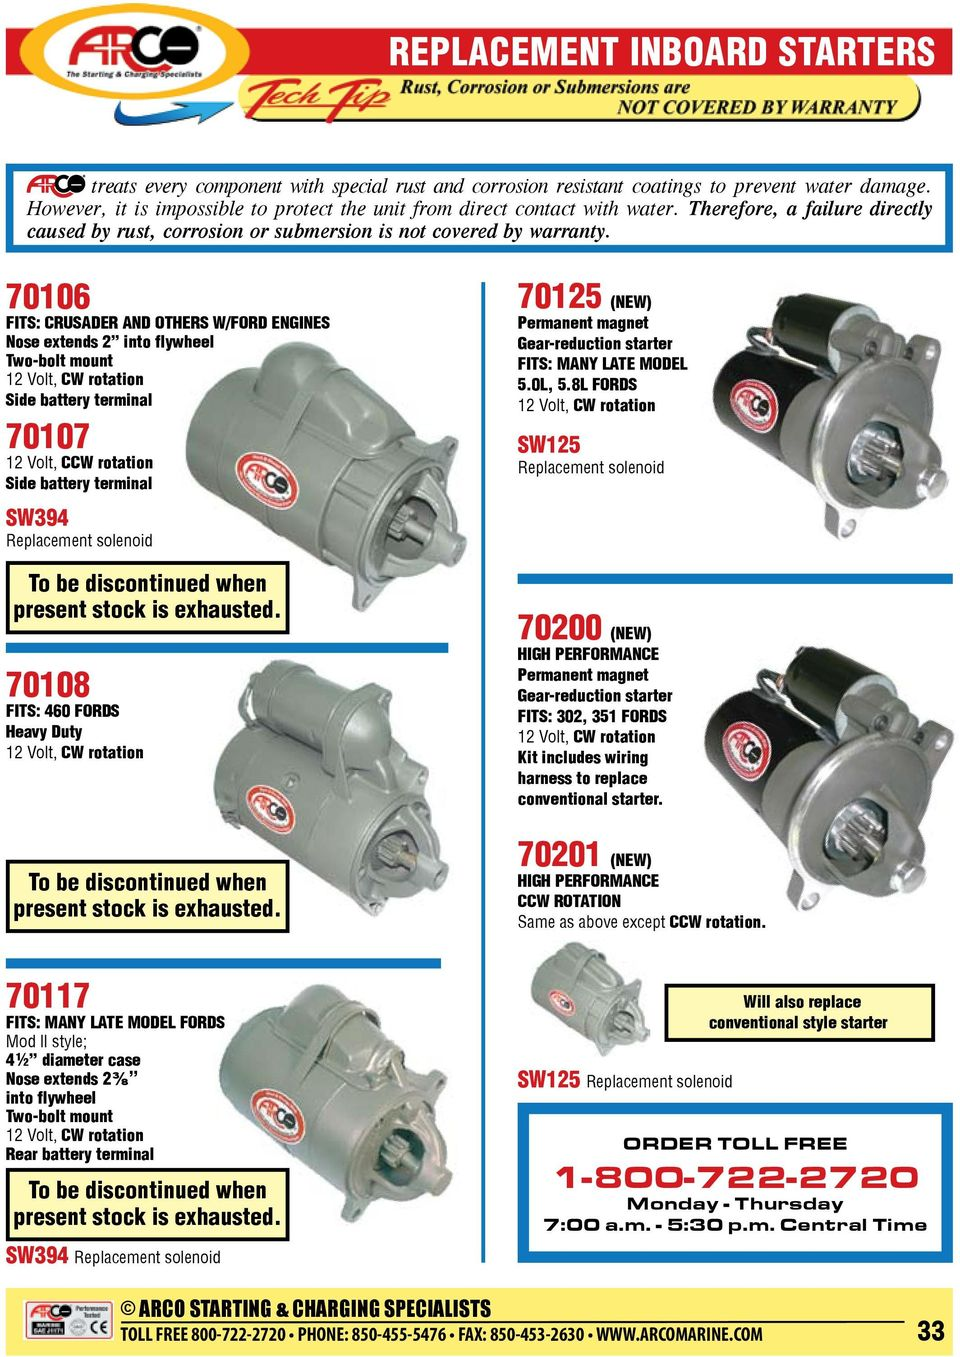 Replacement Inboard Starters Pdf 12 Volt Wiring Harness Kit 70201 New Ccw Rotation Same As Above Except